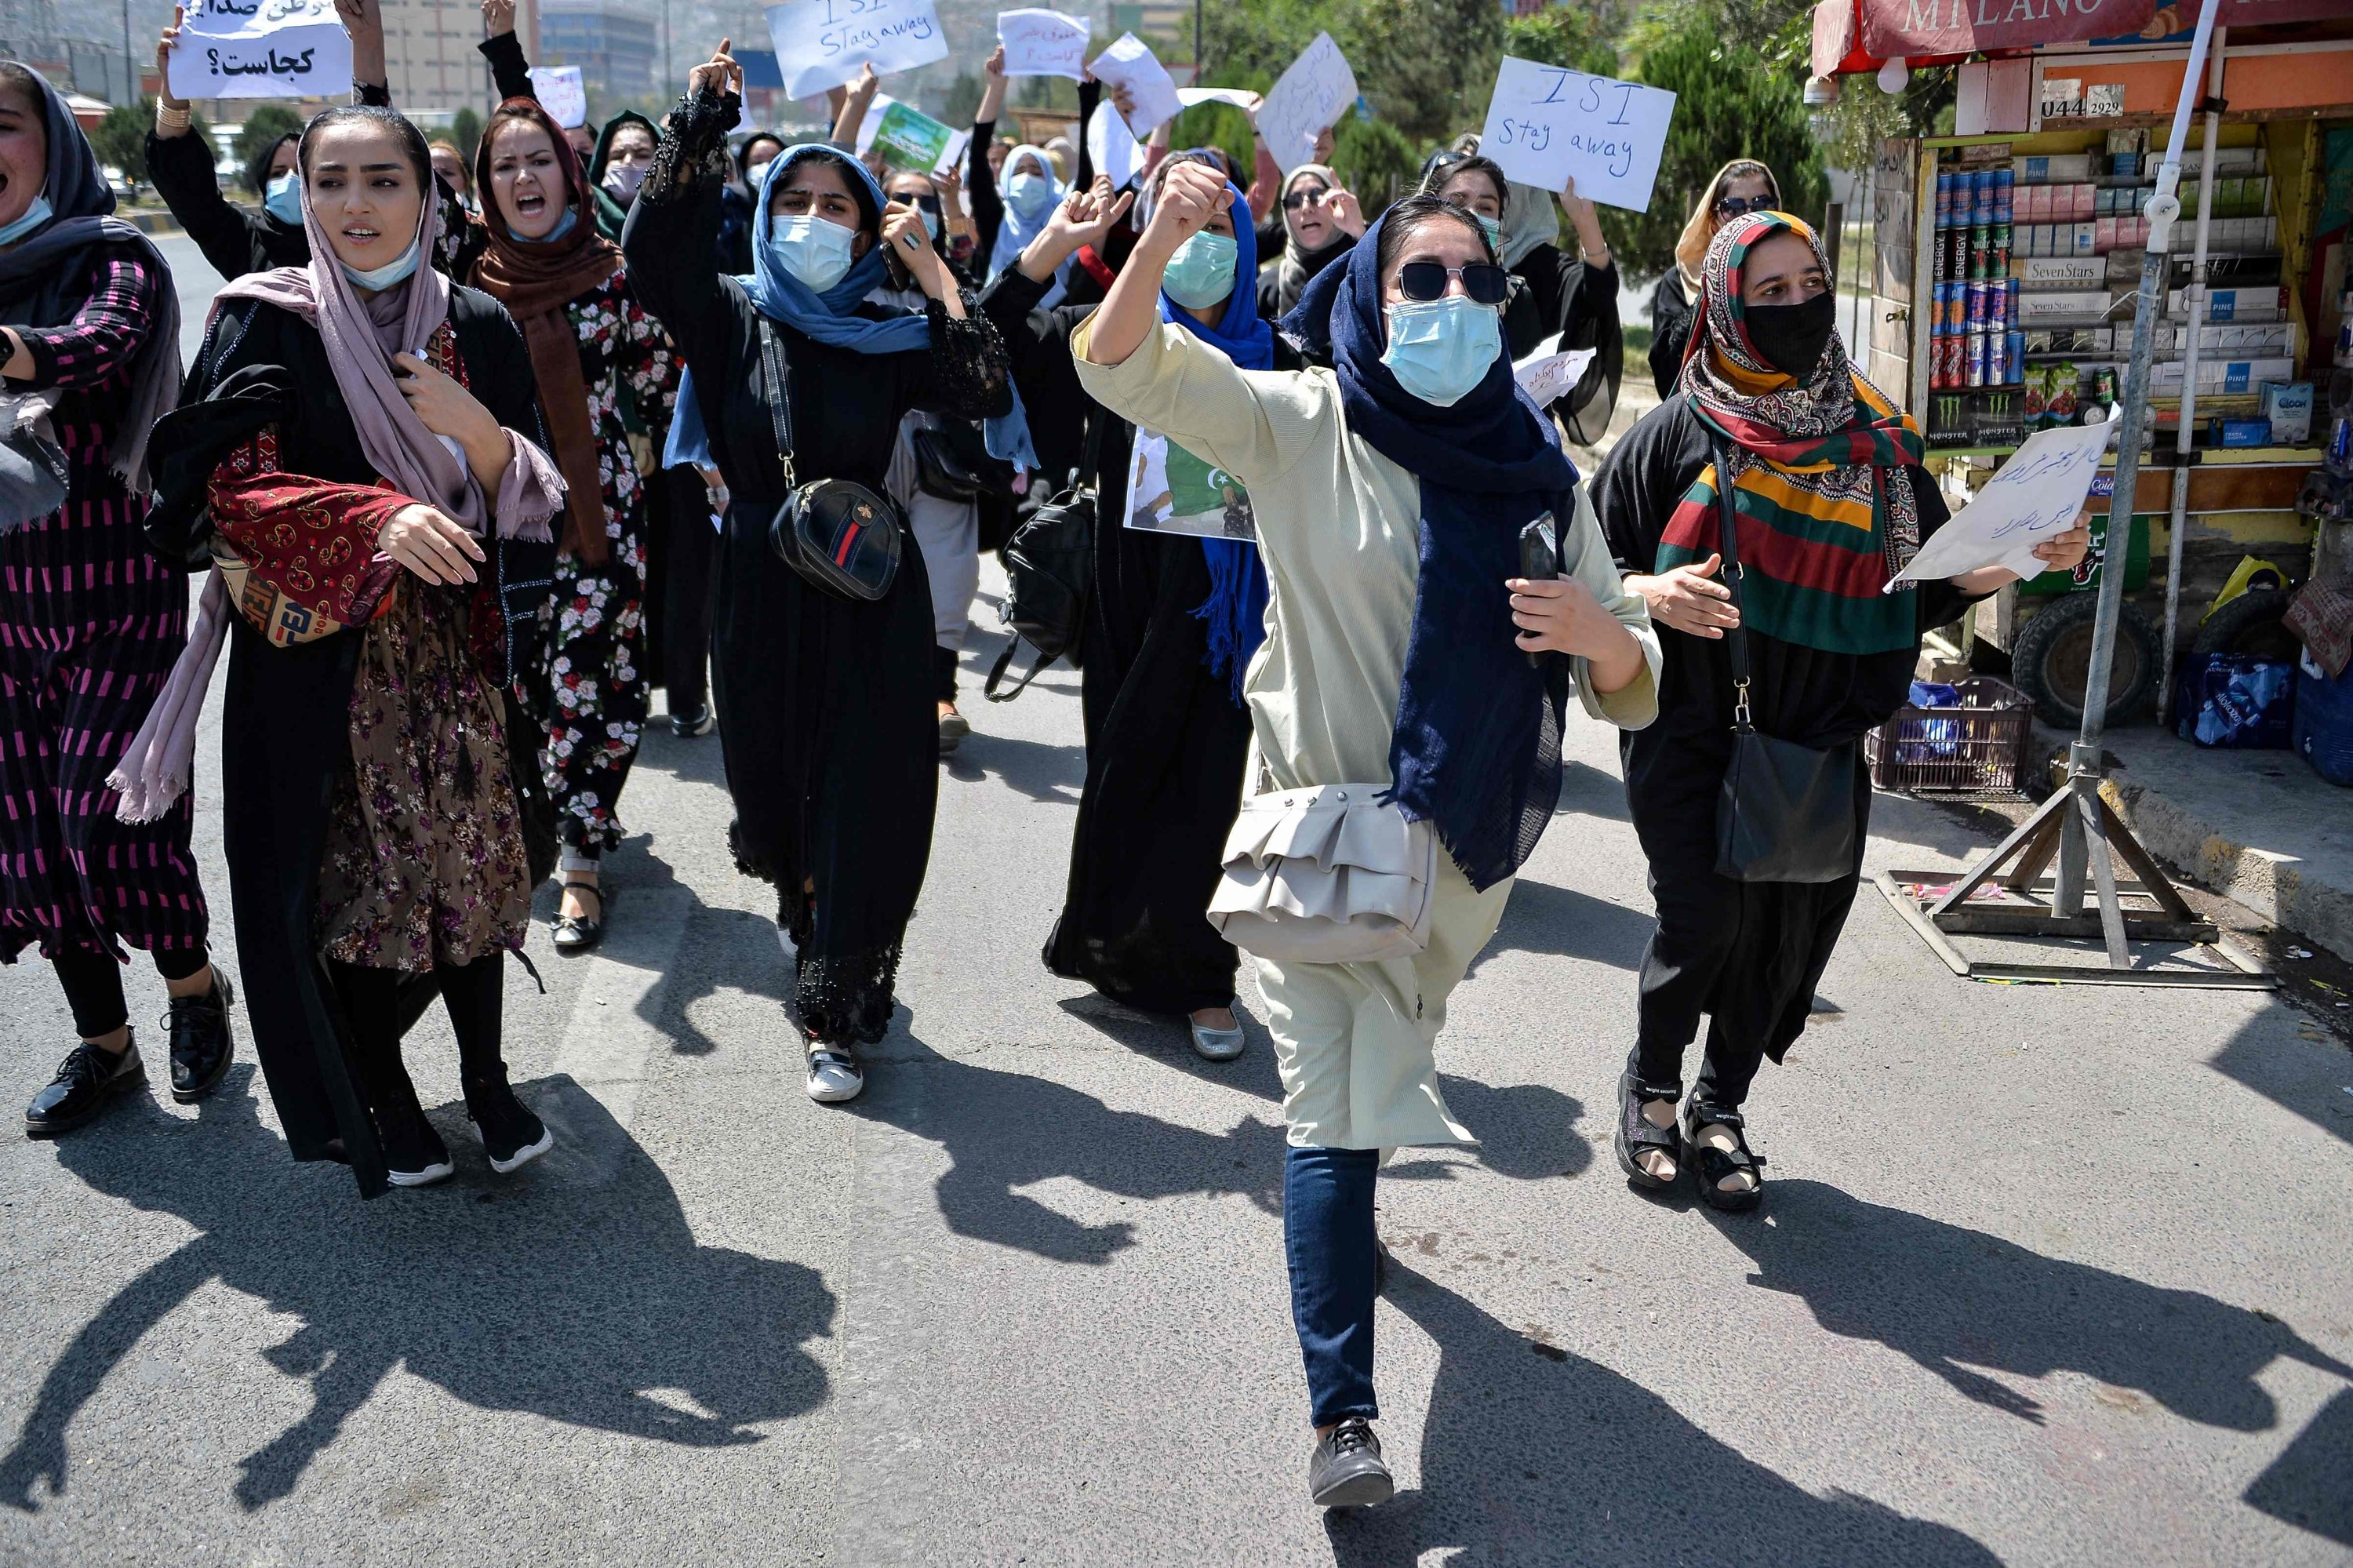 Afghan women shout slogans during an anti-Pakistan protest rally, near the Pakistan embassy in Kabul, Afghanistan, Sept. 7, 2021. (AFP Photo)